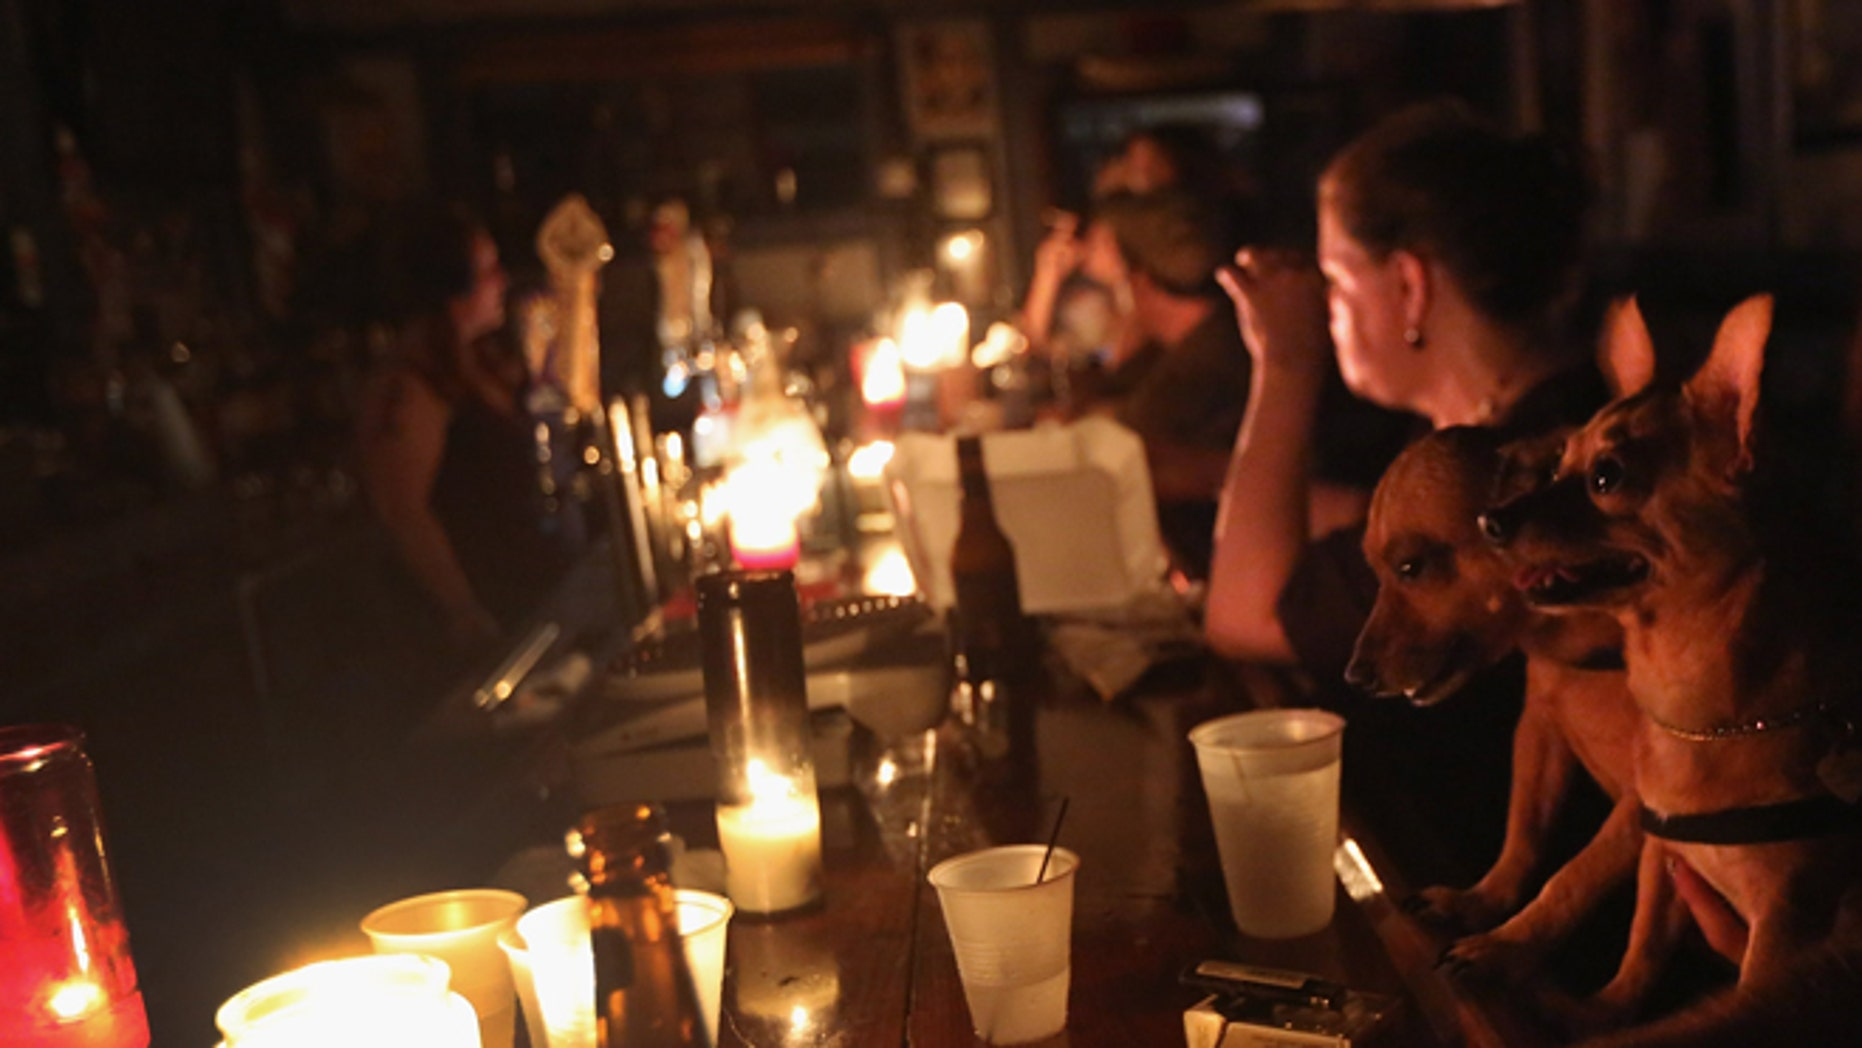 NEW ORLEANS, LA - AUGUST 31:  Local residents drink by candle light at JJ's bar during the continued blackout on August 31, 2012 in the Bywater neighborhood of New Orleans, Louisiana. The area was still without electricity three days after Hurricane Isaac knocked out power to hundreds of thousands of people.  (Photo by John Moore/Getty Images)